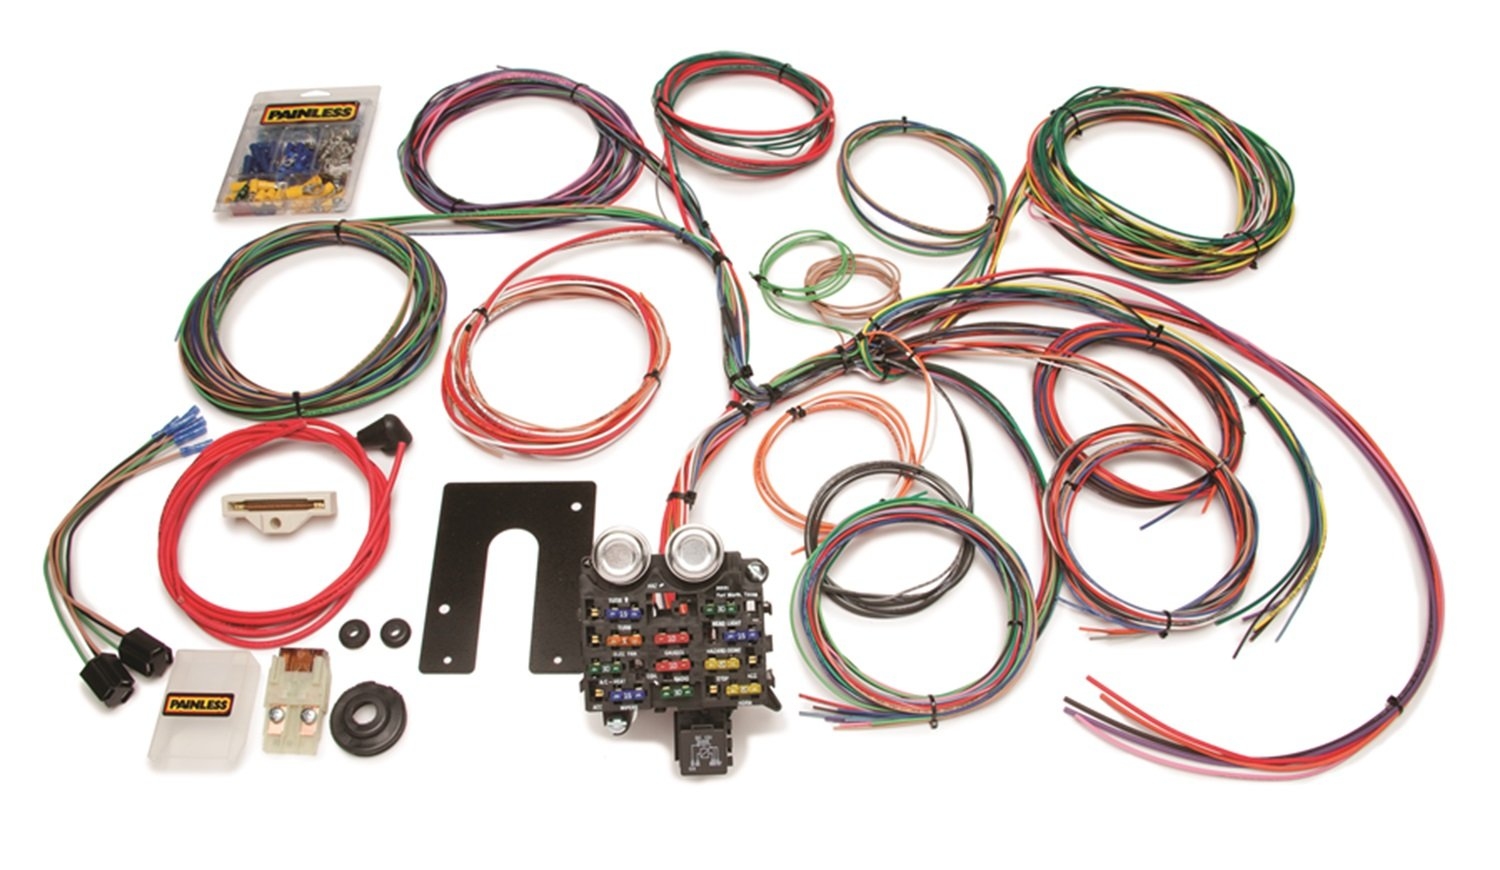 71y4s8BuPyL._SL1500_ amazon com painless wire 10105 wiring harness with firewall painless wiring harness at crackthecode.co